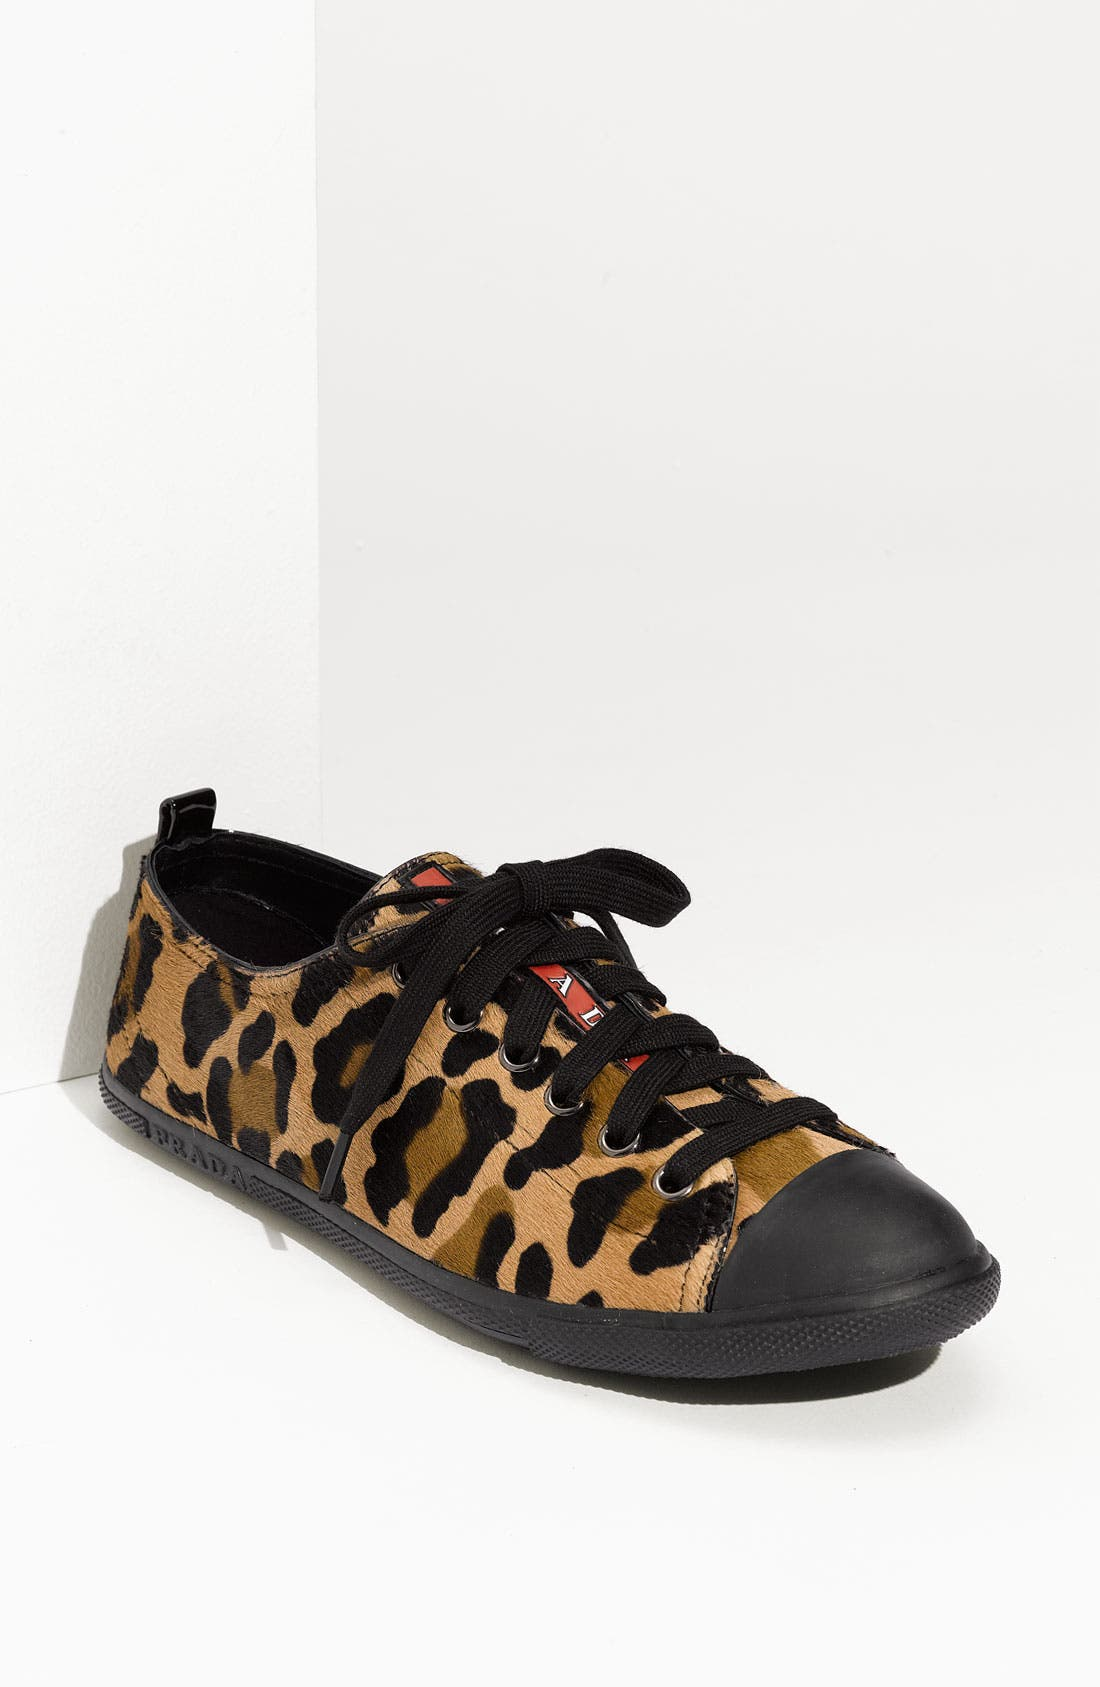 Alternate Image 1 Selected - Prada Leopard Print Sneaker